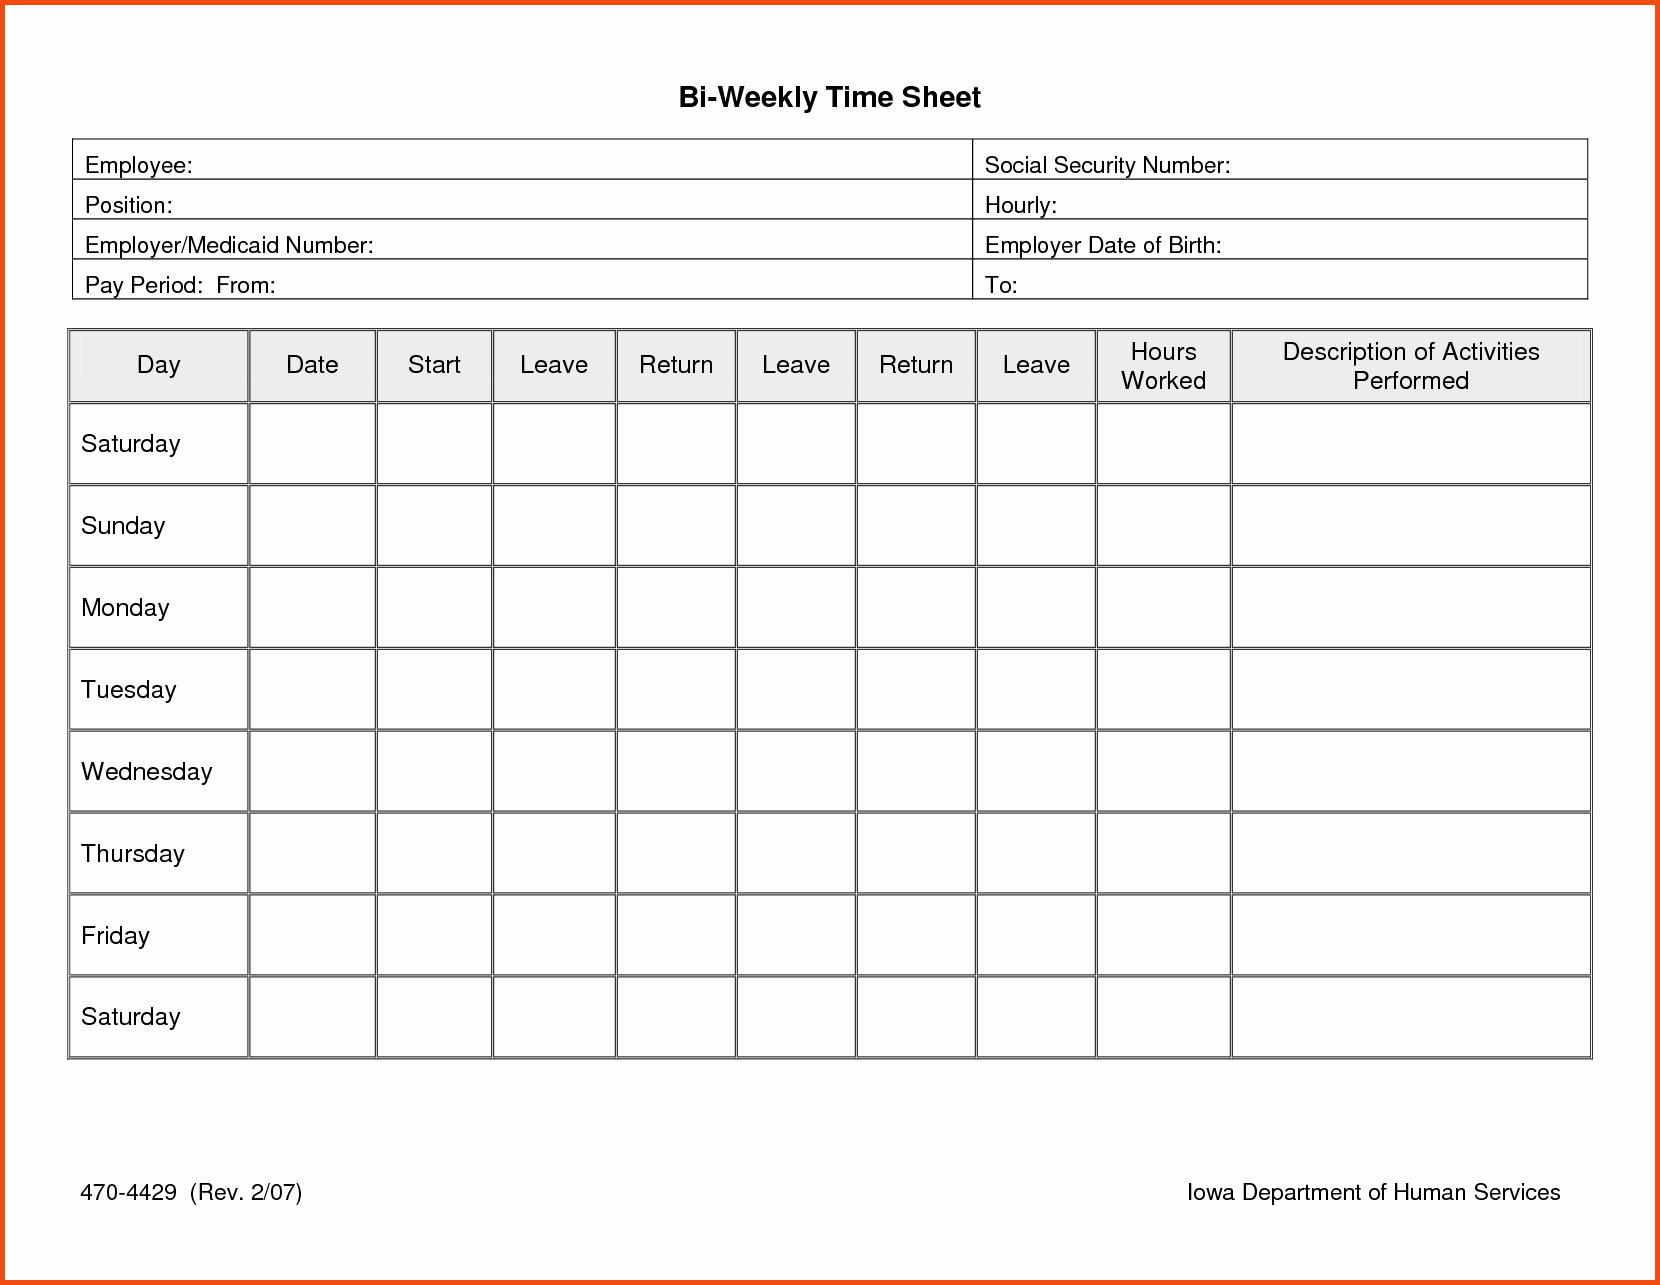 Daily Timesheet Template Free Printable New Daily Timesheet Template Free Printable